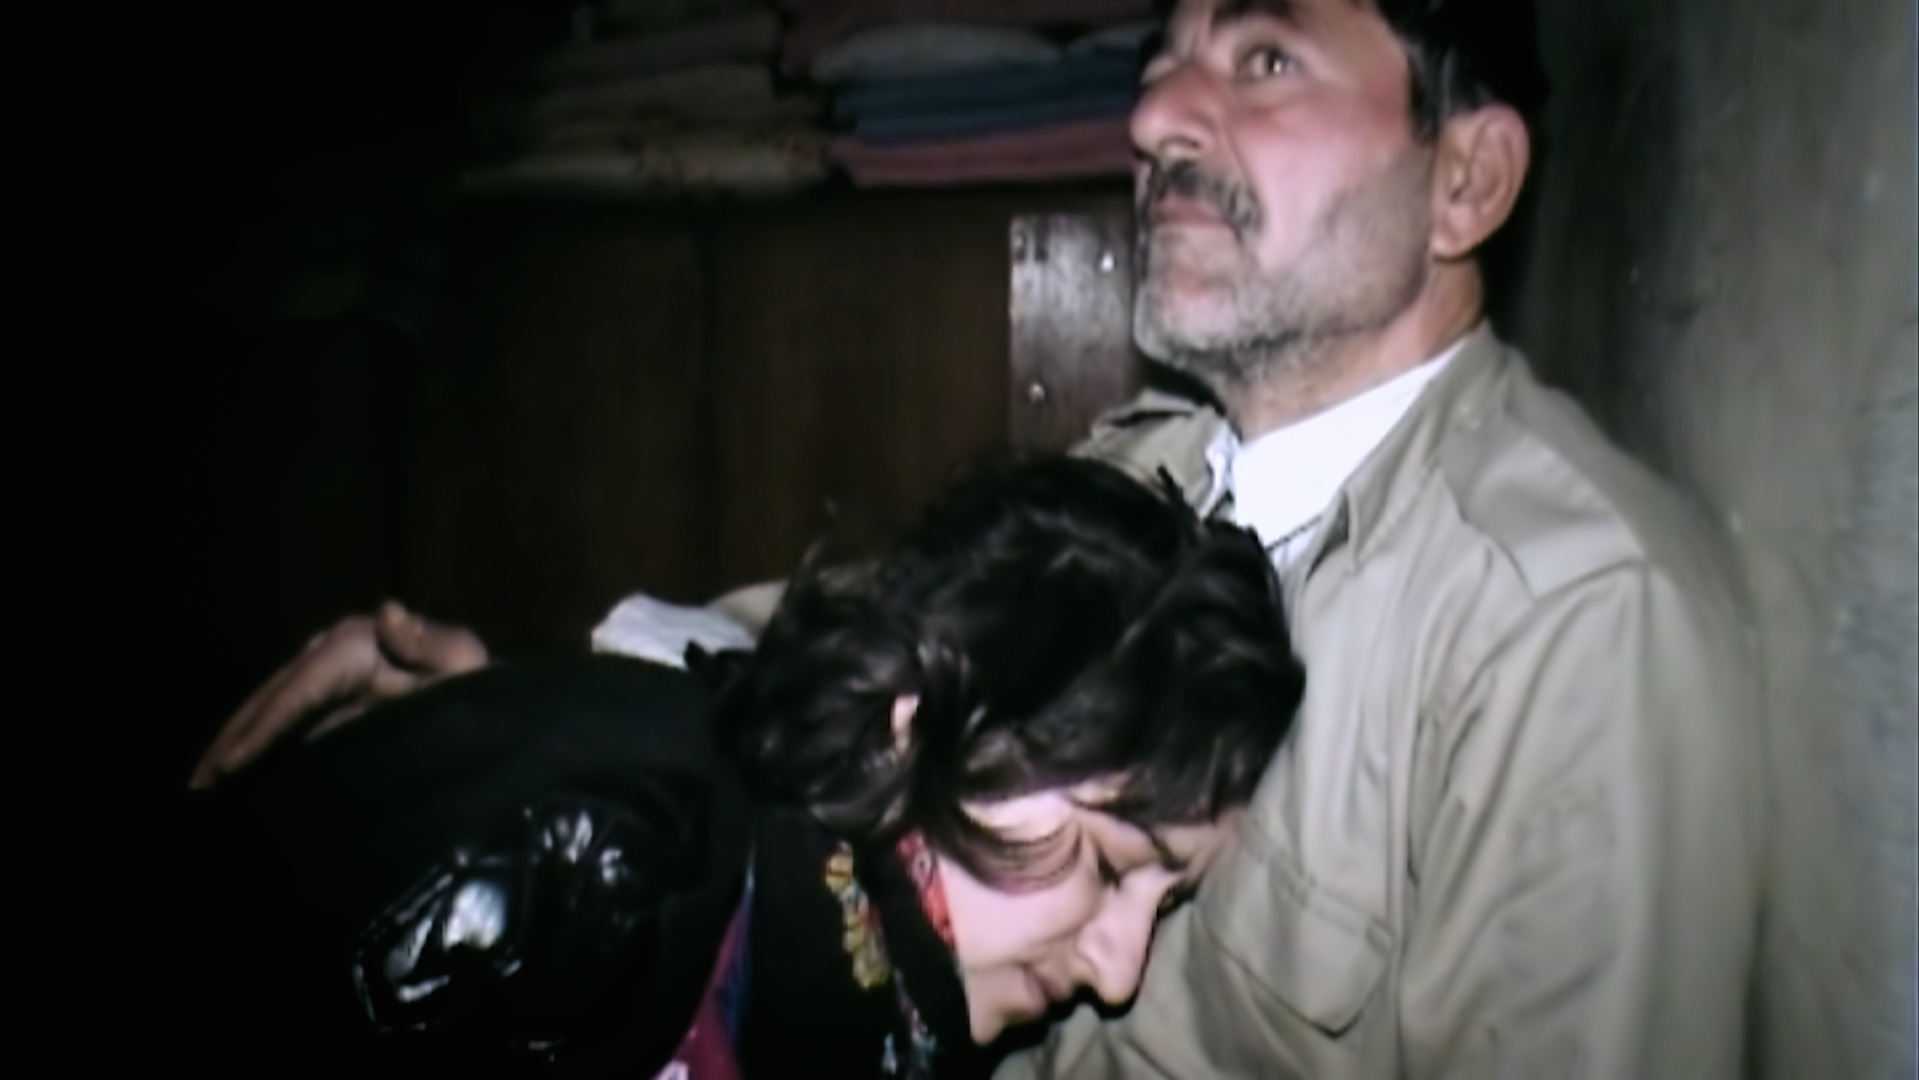 Mahmoud, a survivor of the chemical bombardment of Halabja, describes how more than 140 people died in his cellar. He remembers stepping on the body of his wife as he escaped into the street outside his house. His daughter survived but suffered a psychotic breakdown.